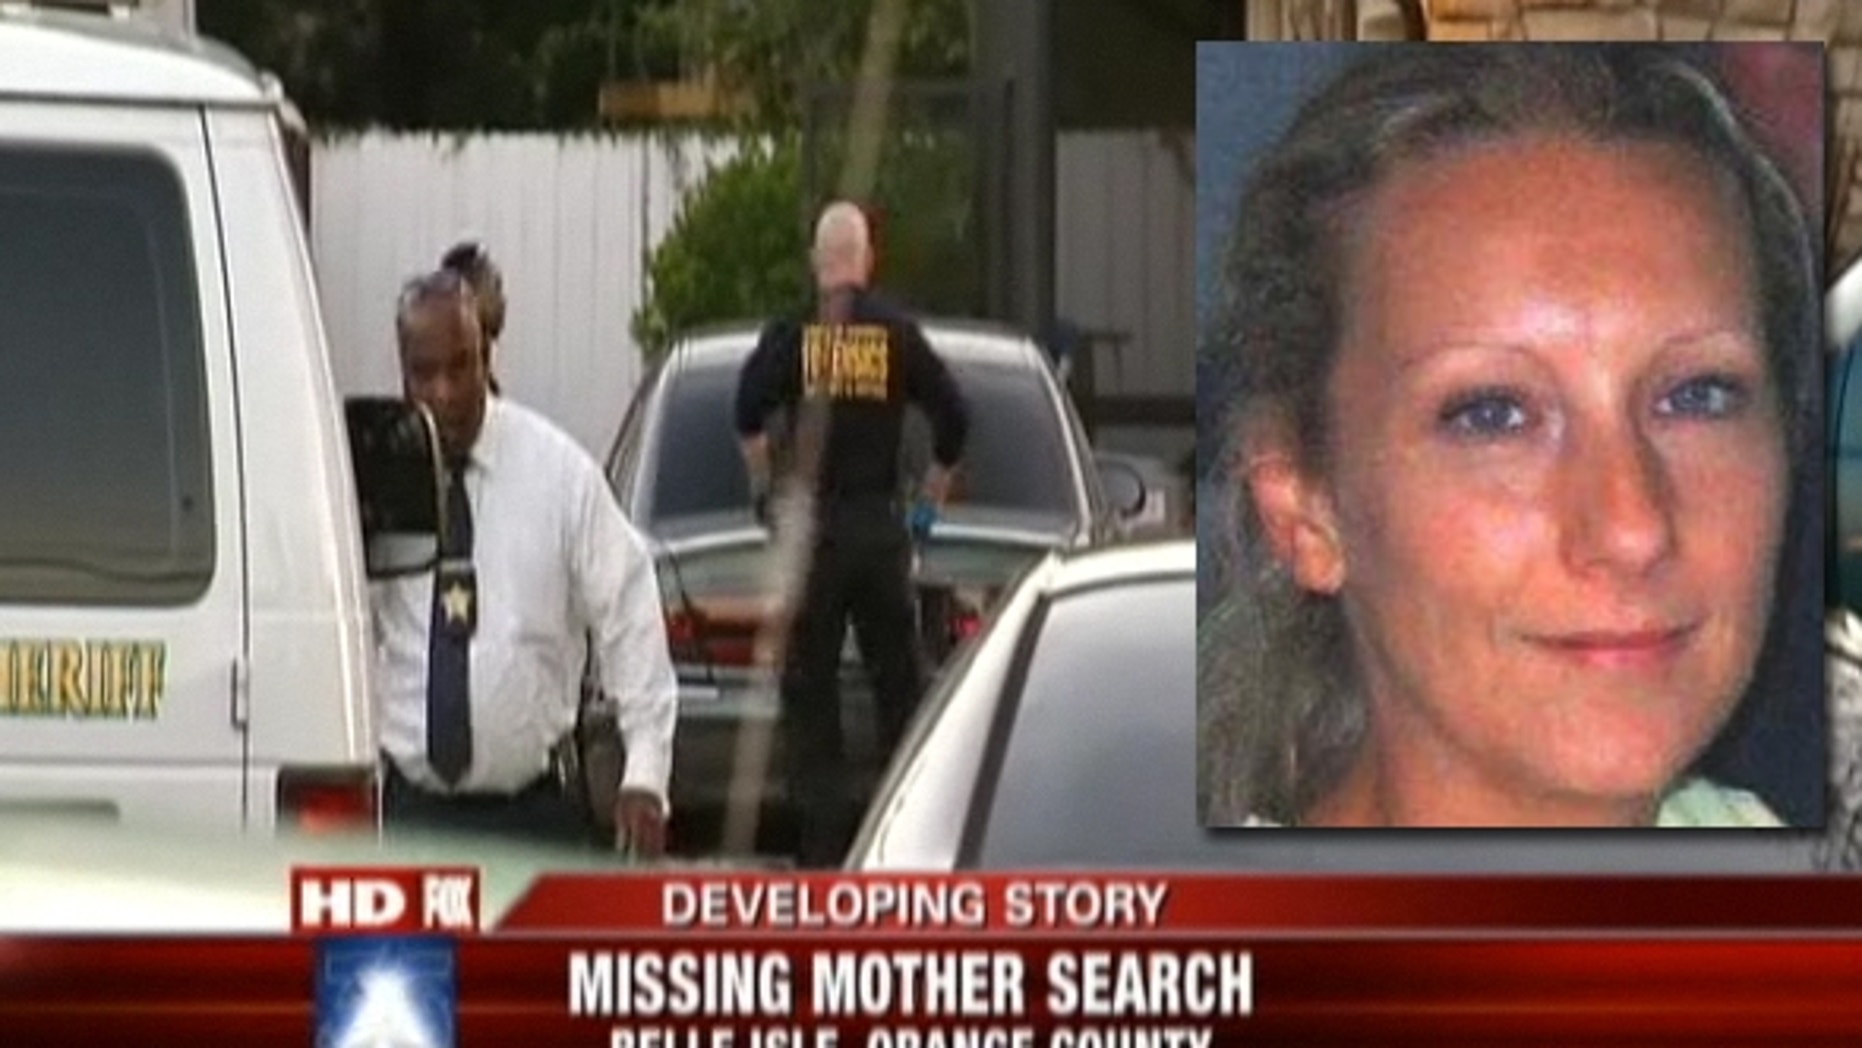 Michelle Dubois, 36, was reported missing Monday after her husband says he returned to the couple's Orange County, Fla., home and found her gone. The woman's cell phone, driver's license and credit cards were left inside the house, her husband told police (MyFoxOrlando.com).